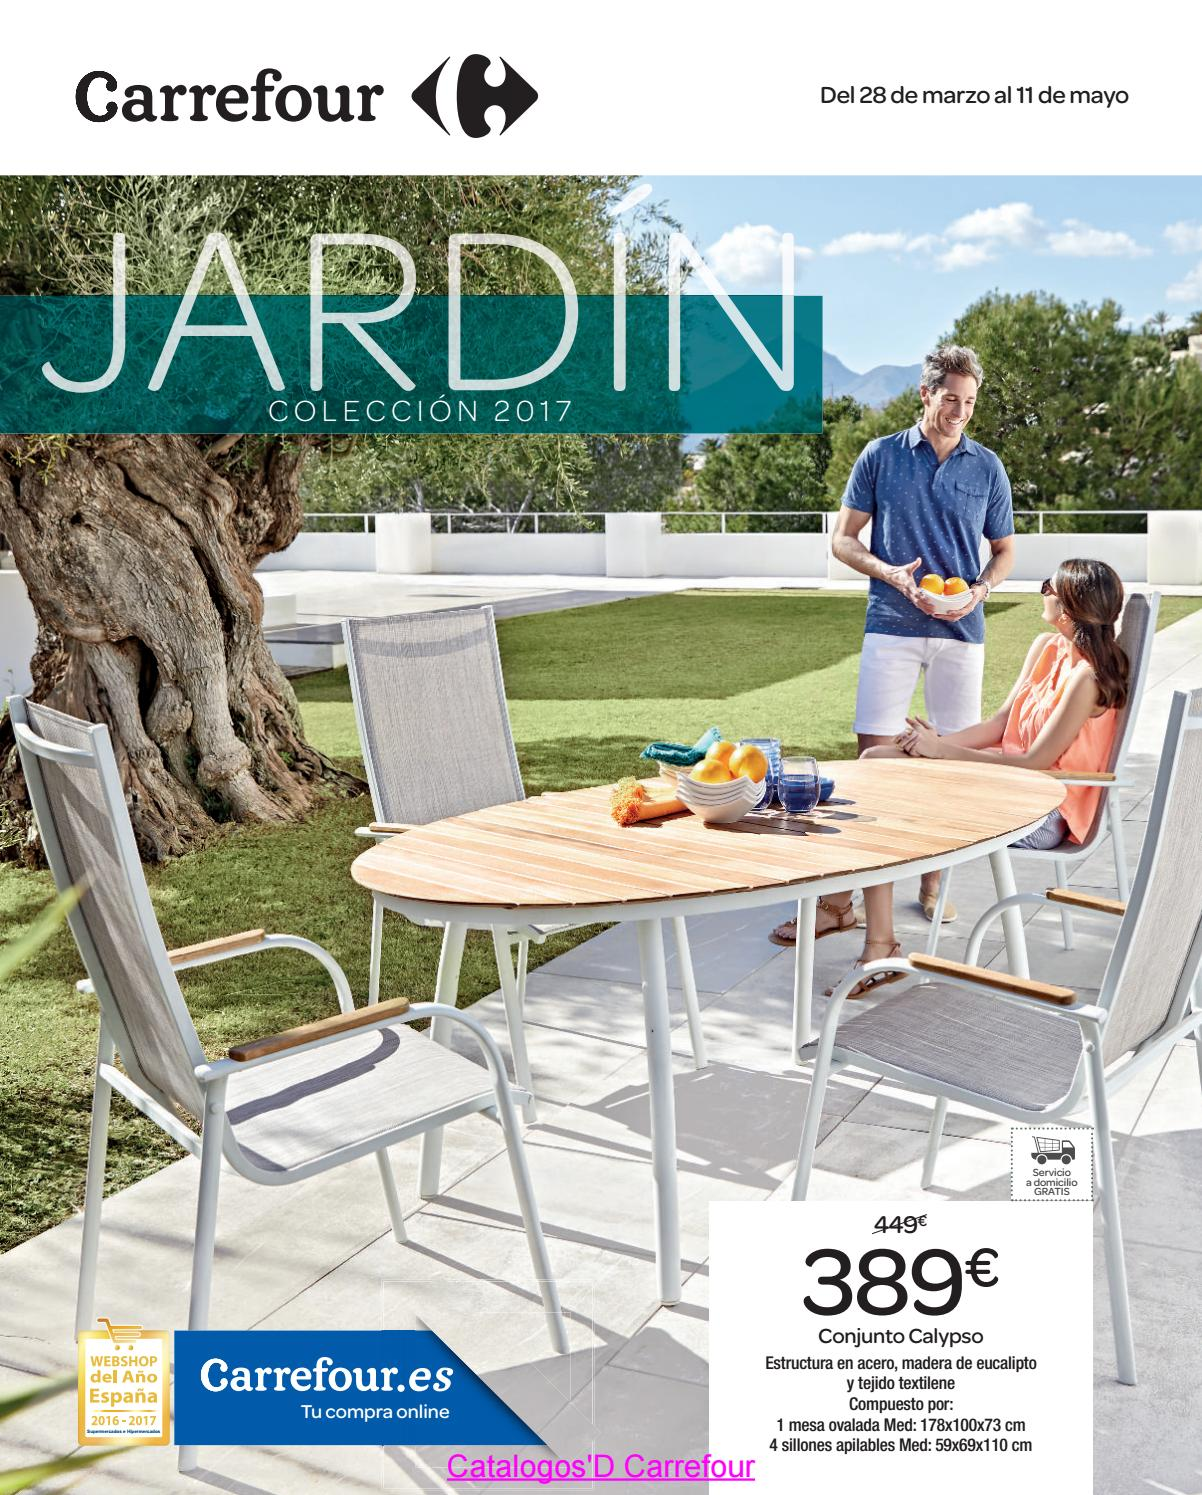 Taburete Con Ruedas Carrefour Jardin Carrefour 2017 By Catalogosd By Revistas En Linea Issuu